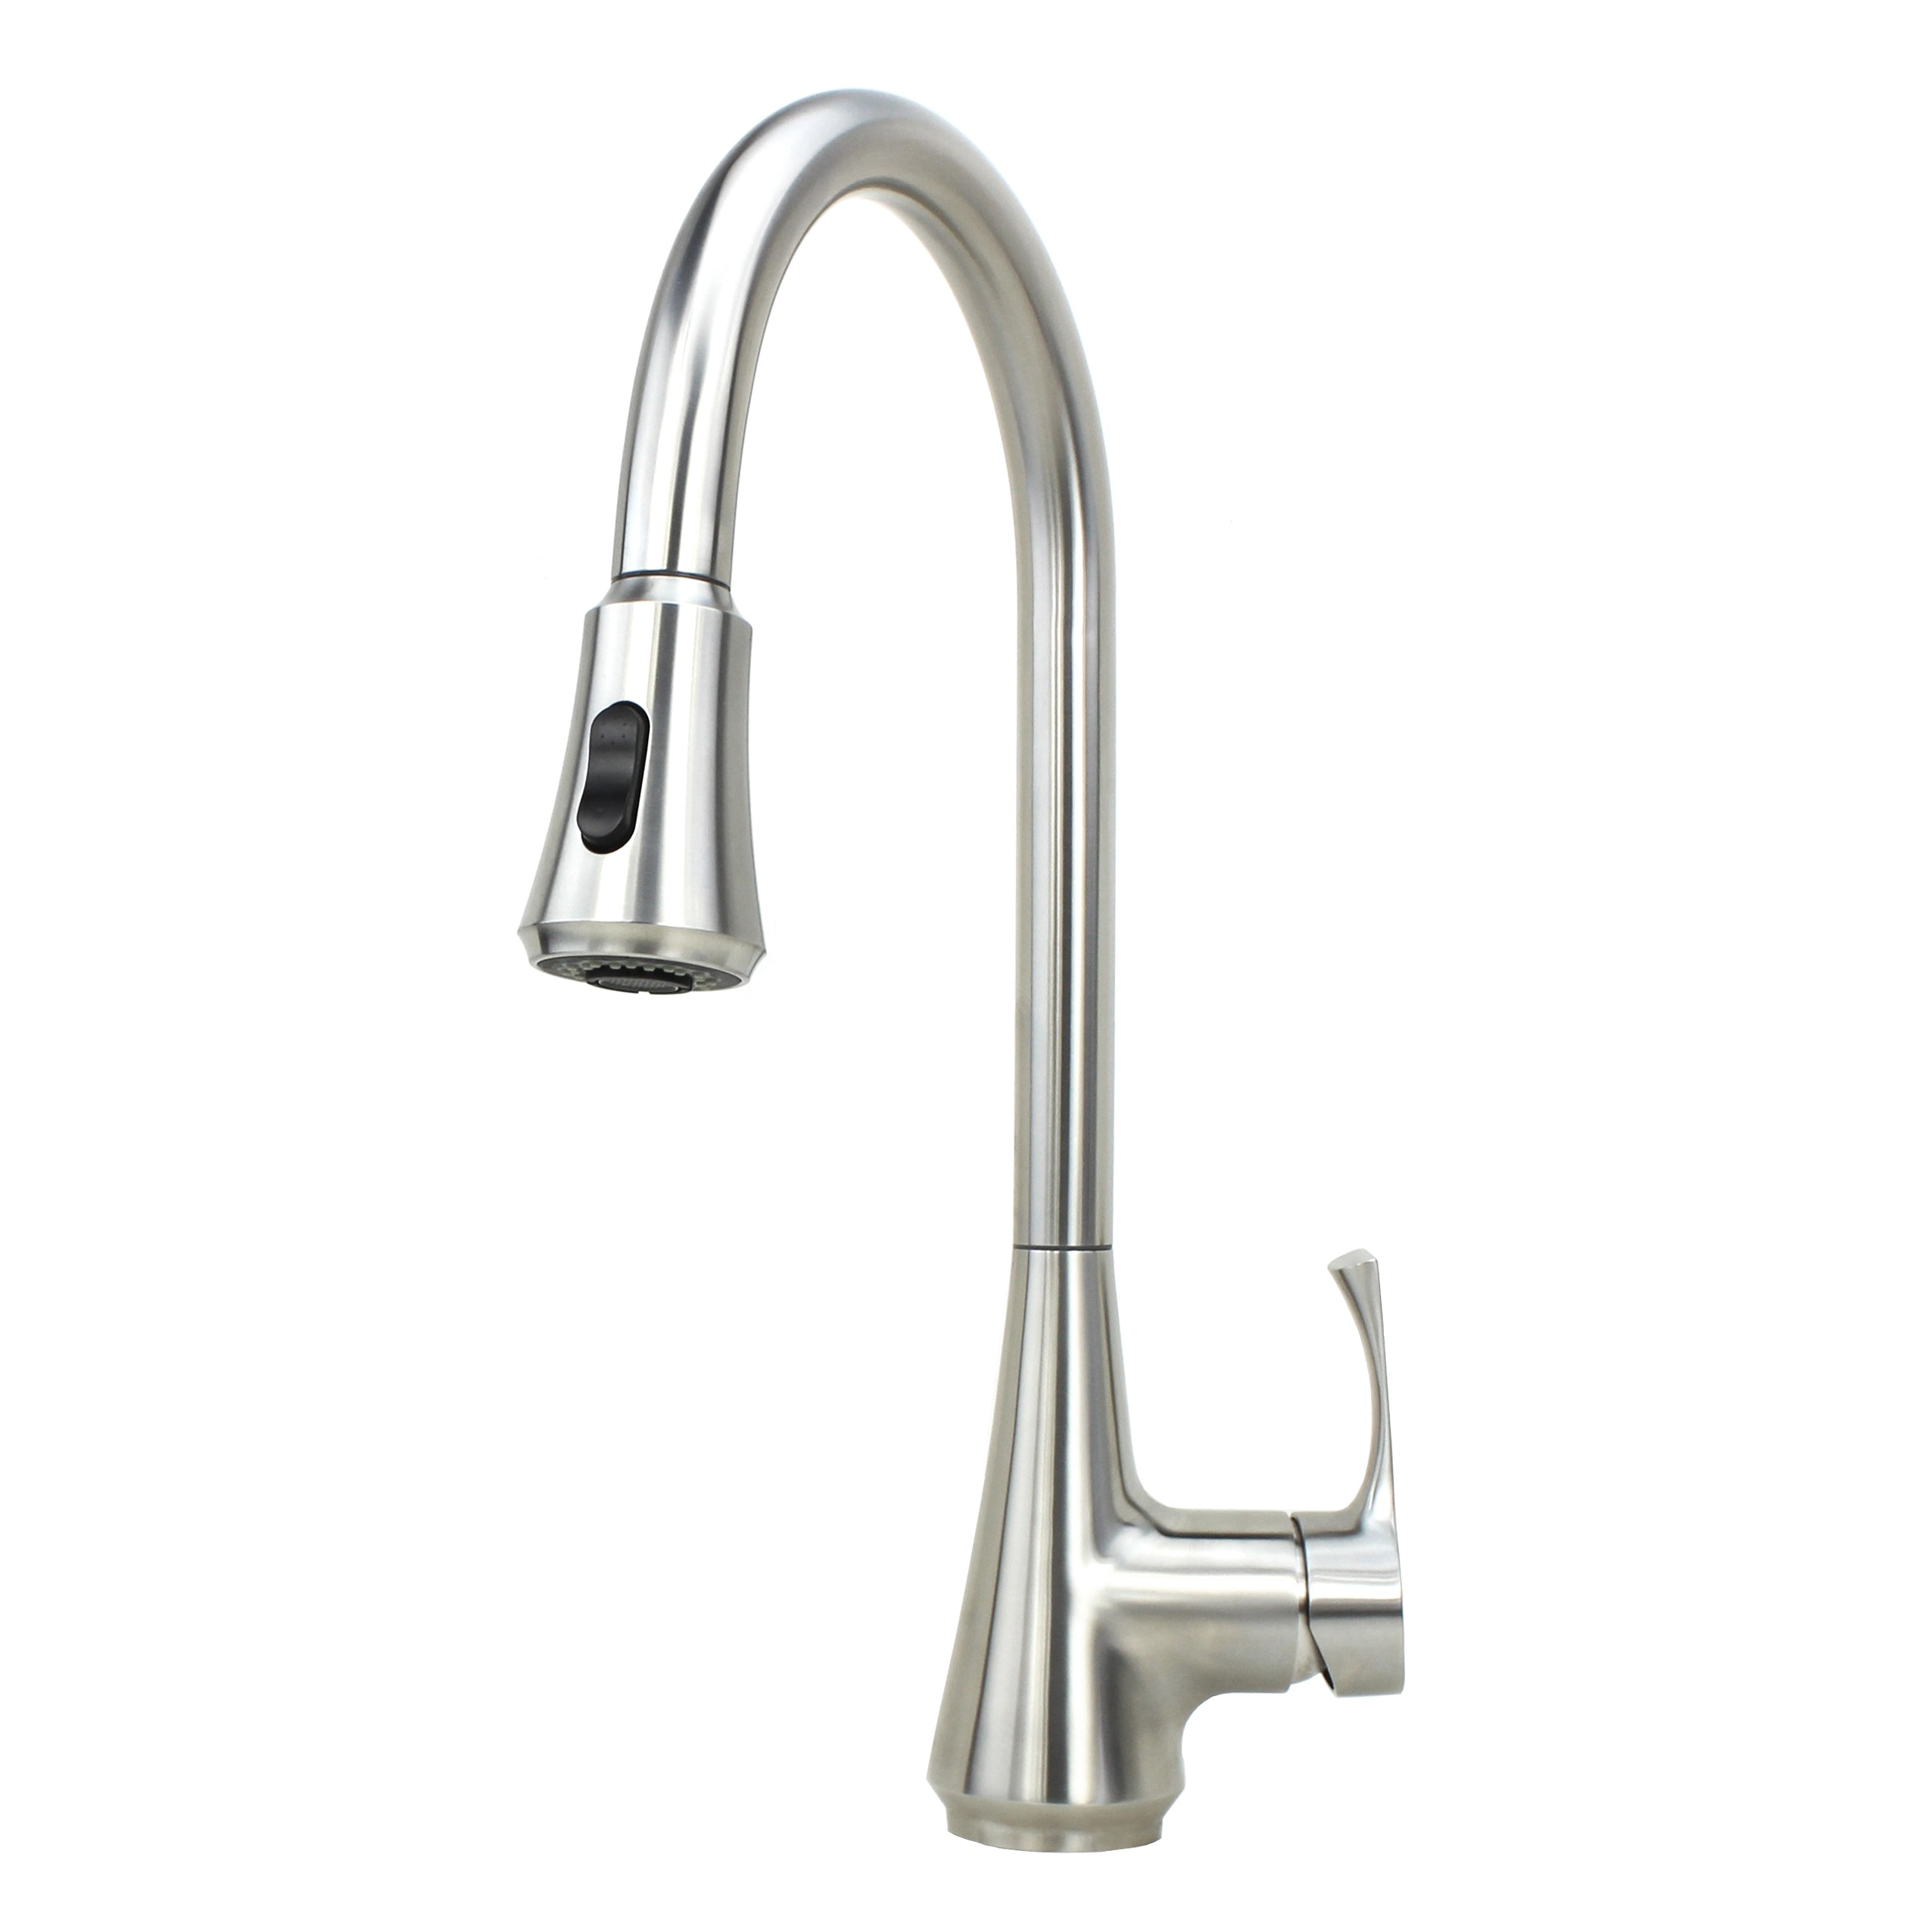 faucets commercial units single a spray replacement for handle rins pre modern sprayer faucet winsome danze must rinse your inc unit kitchen hose